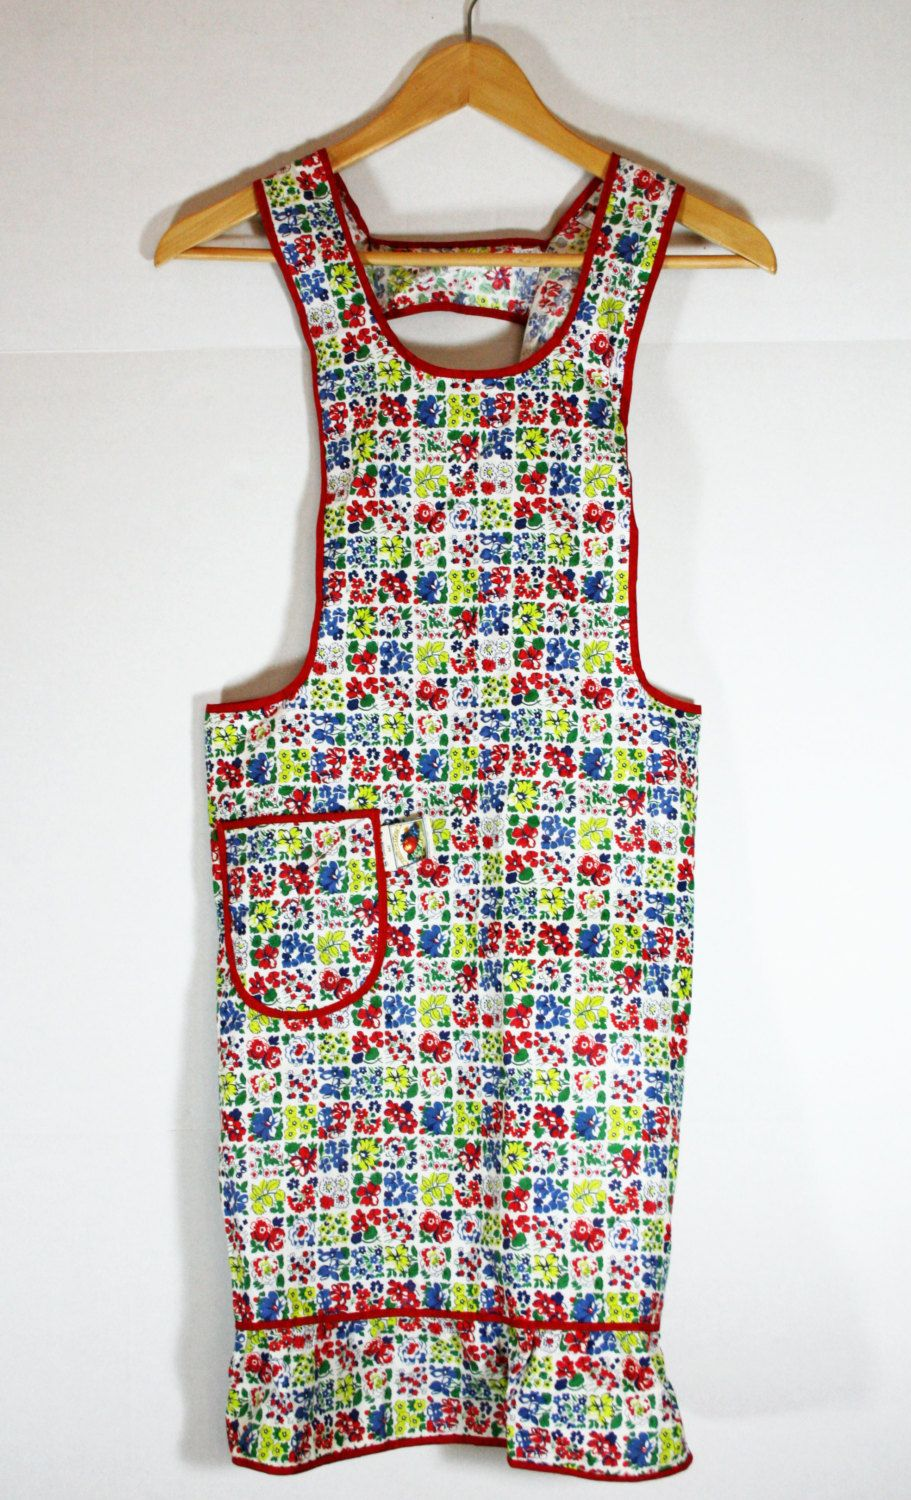 Vintage Silin's Fruit of the Loom Full Apron Excellent